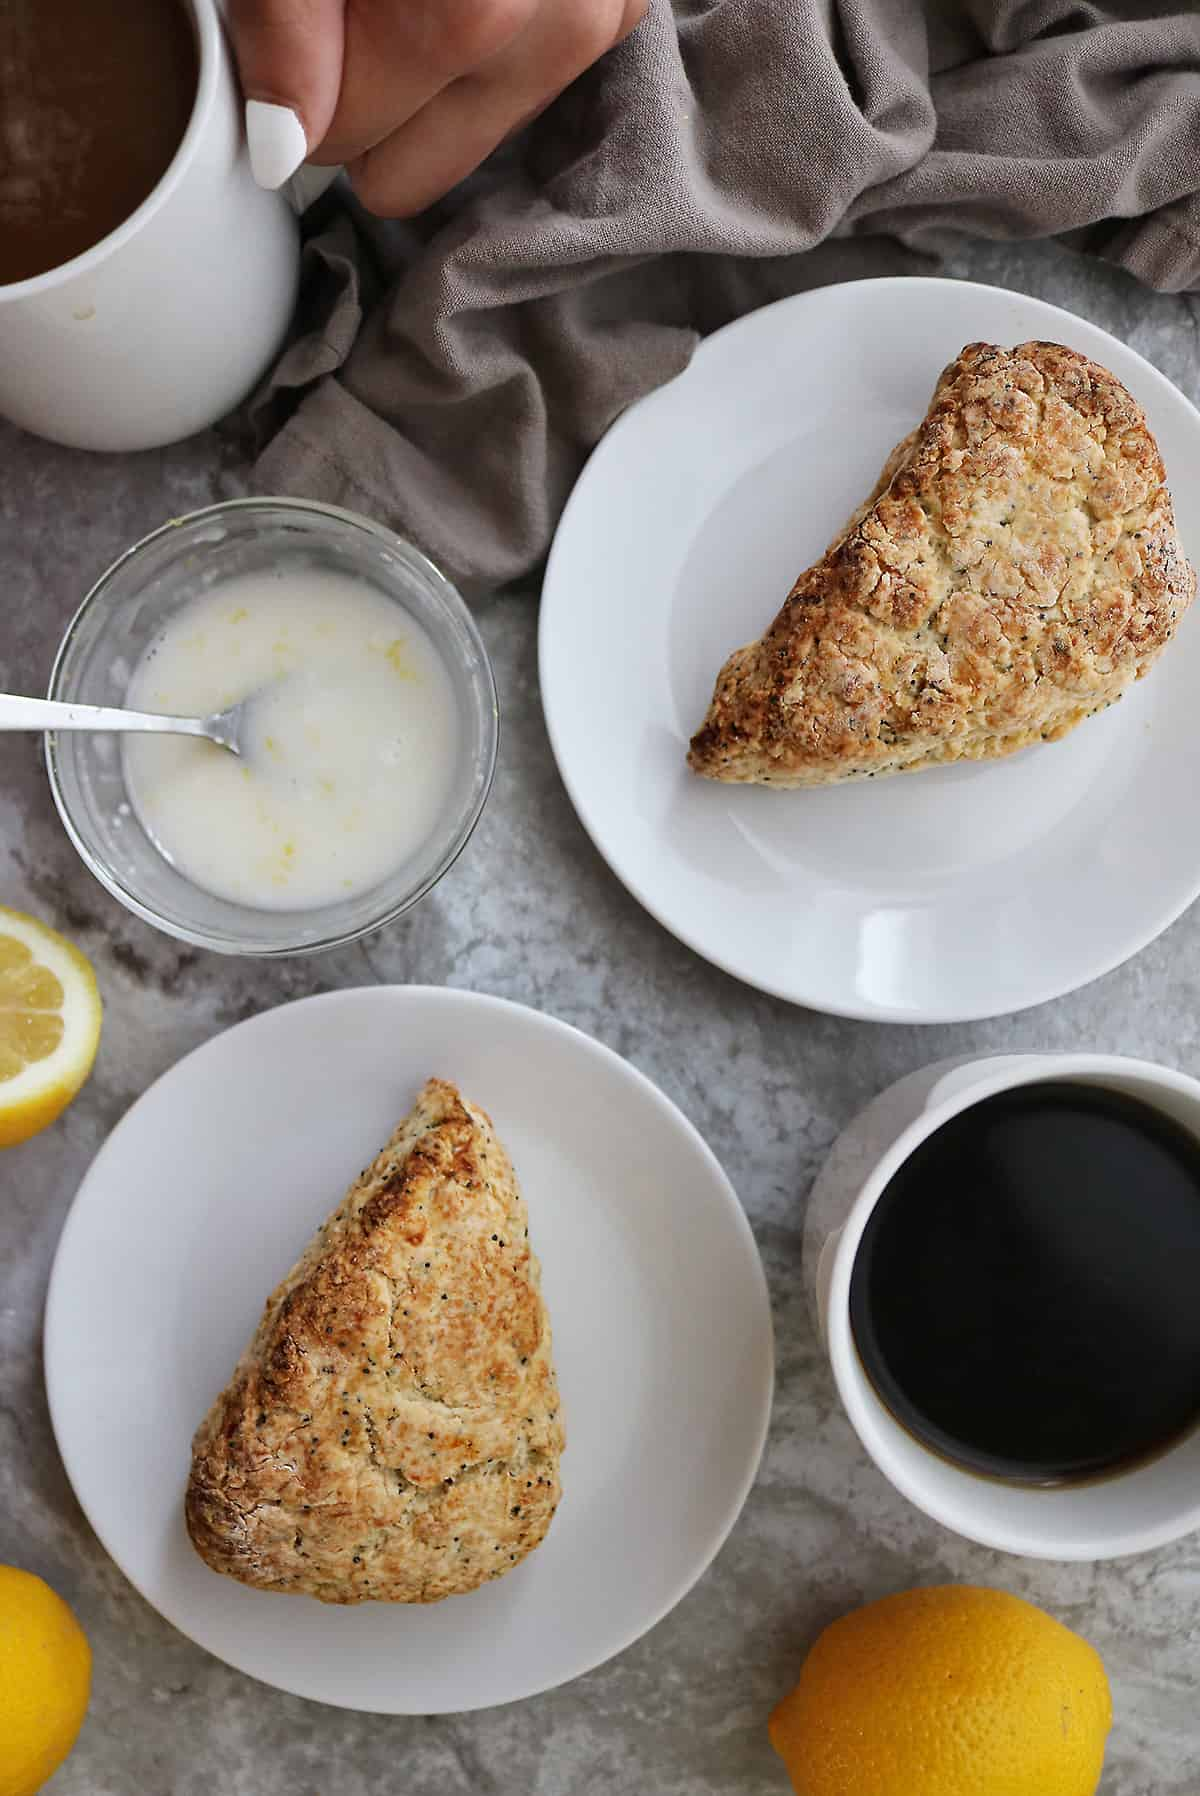 Gluten Free Lemon Poppyseed Scones are safe for everyone to eat. They're even made lactose-free!